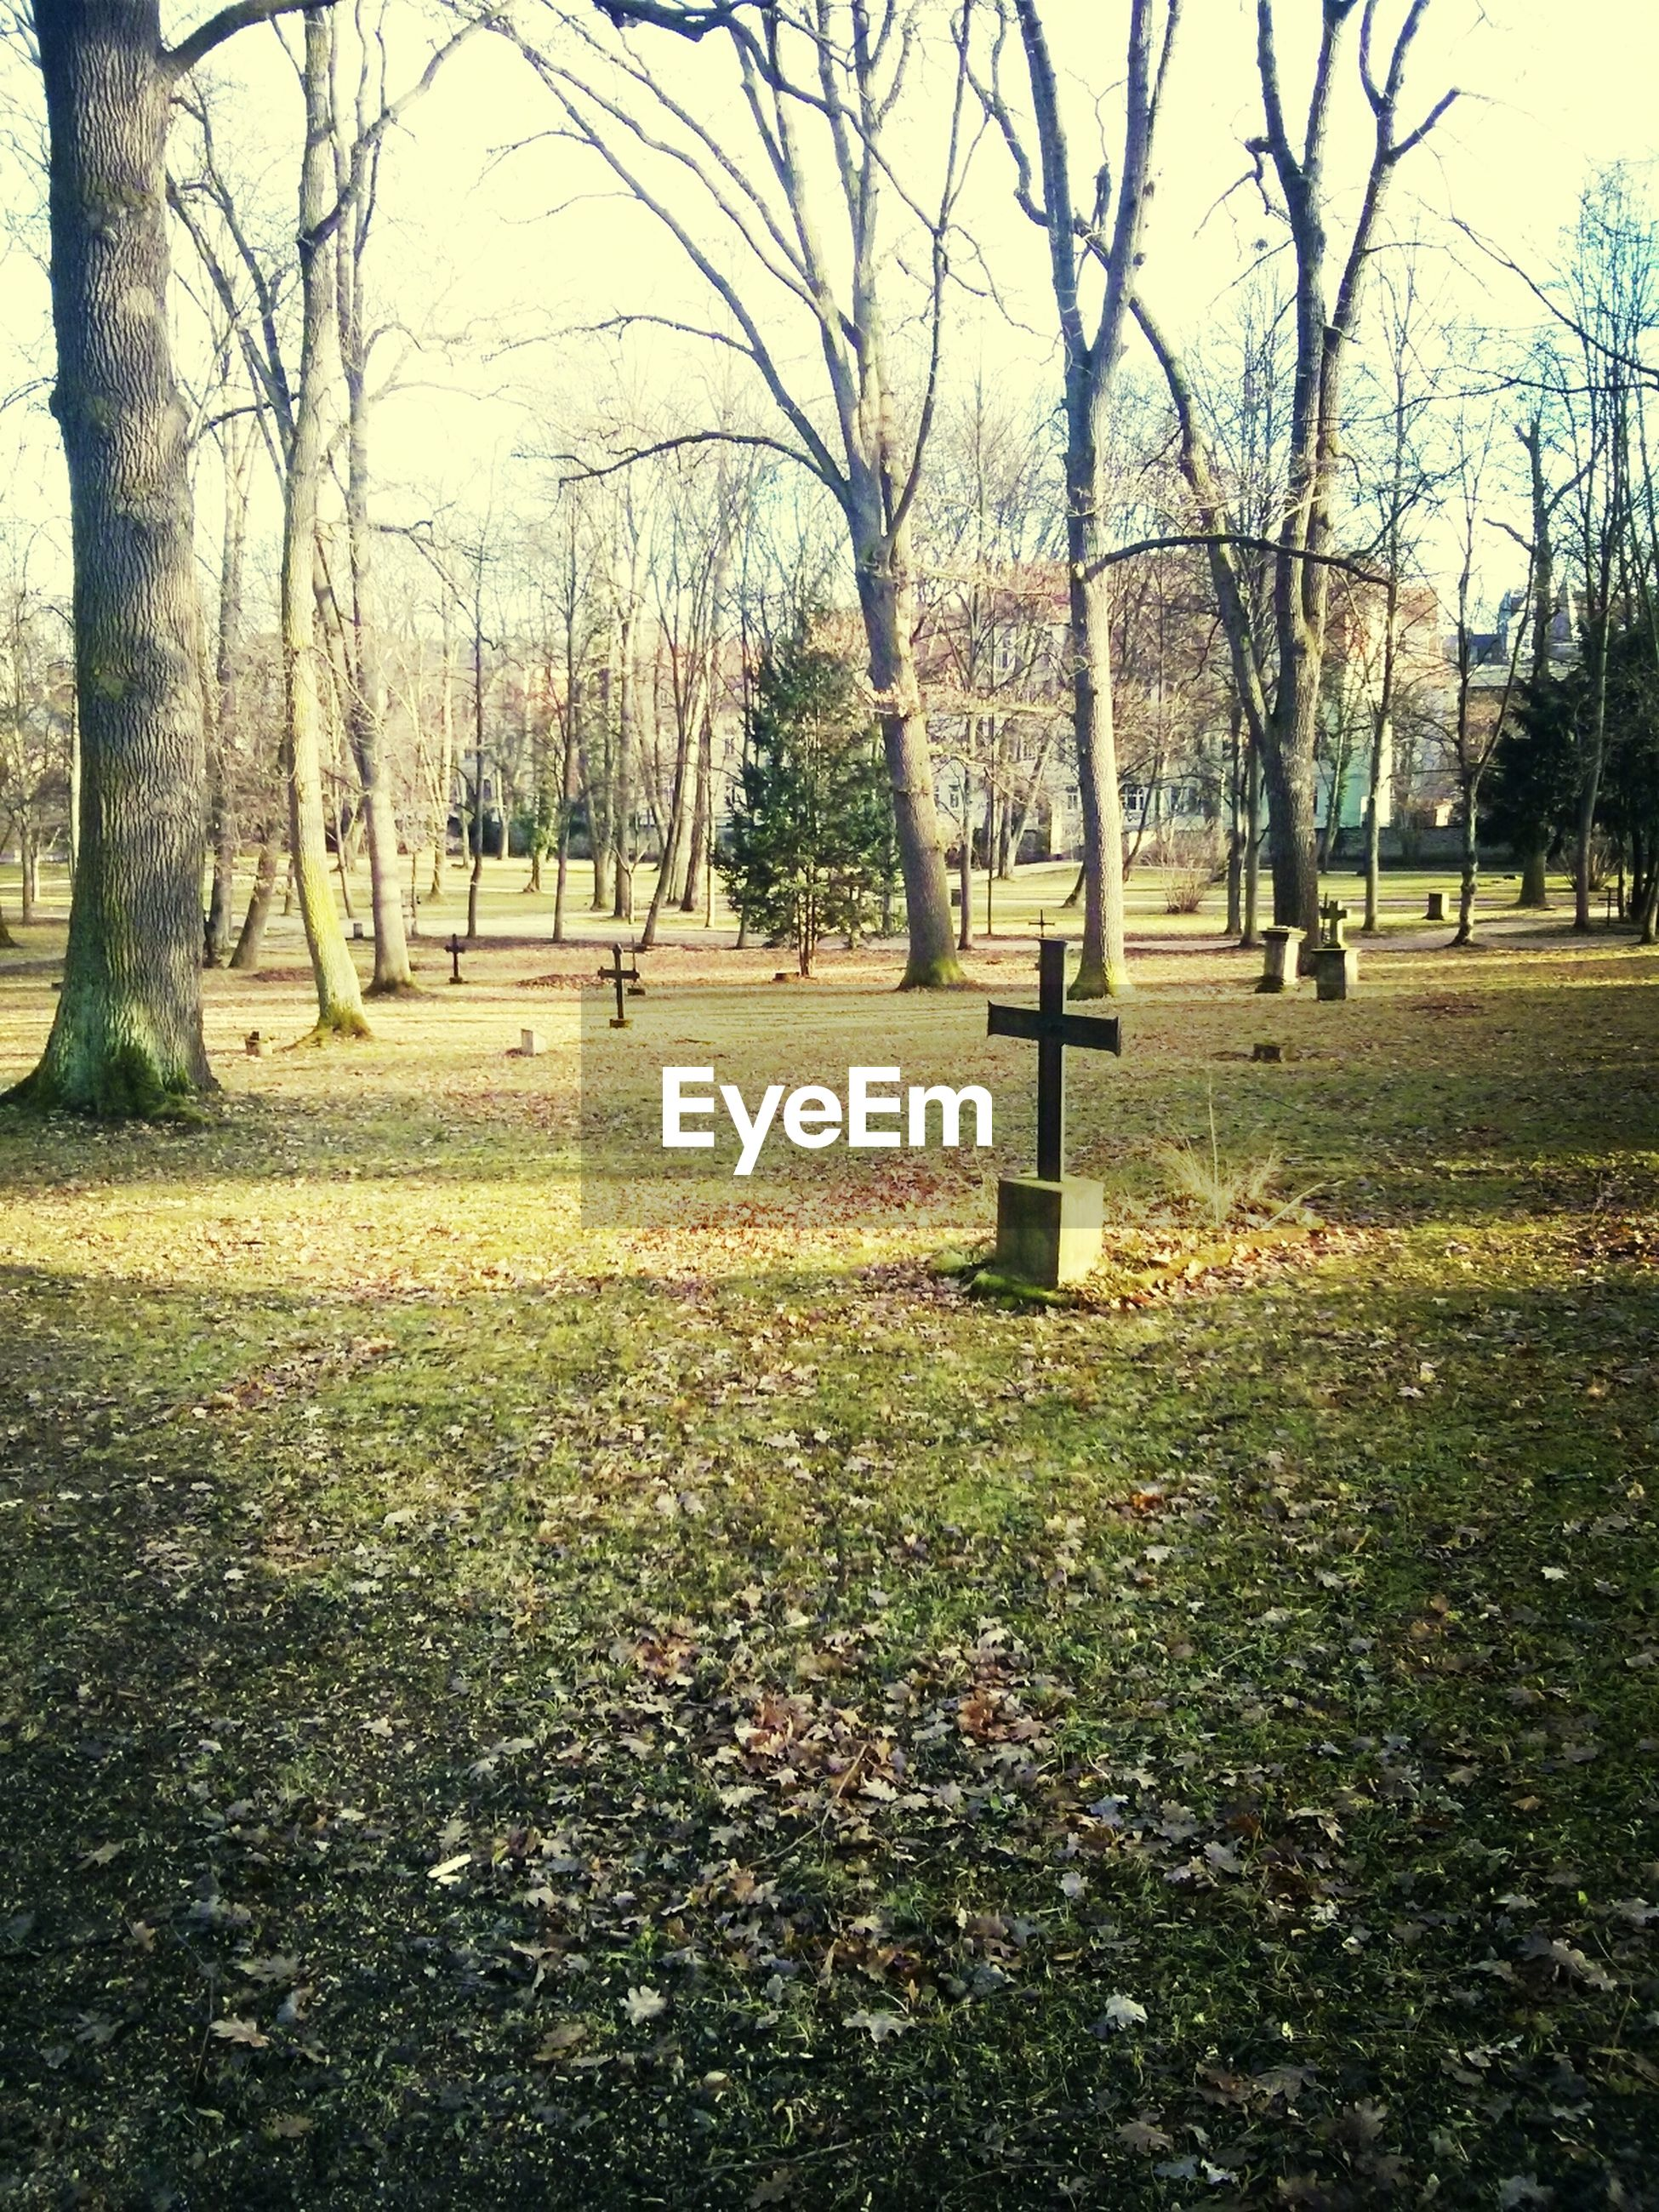 tree, bare tree, tree trunk, branch, grass, autumn, park - man made space, tranquility, nature, park, growth, tranquil scene, change, day, beauty in nature, outdoors, fallen, scenics, field, landscape